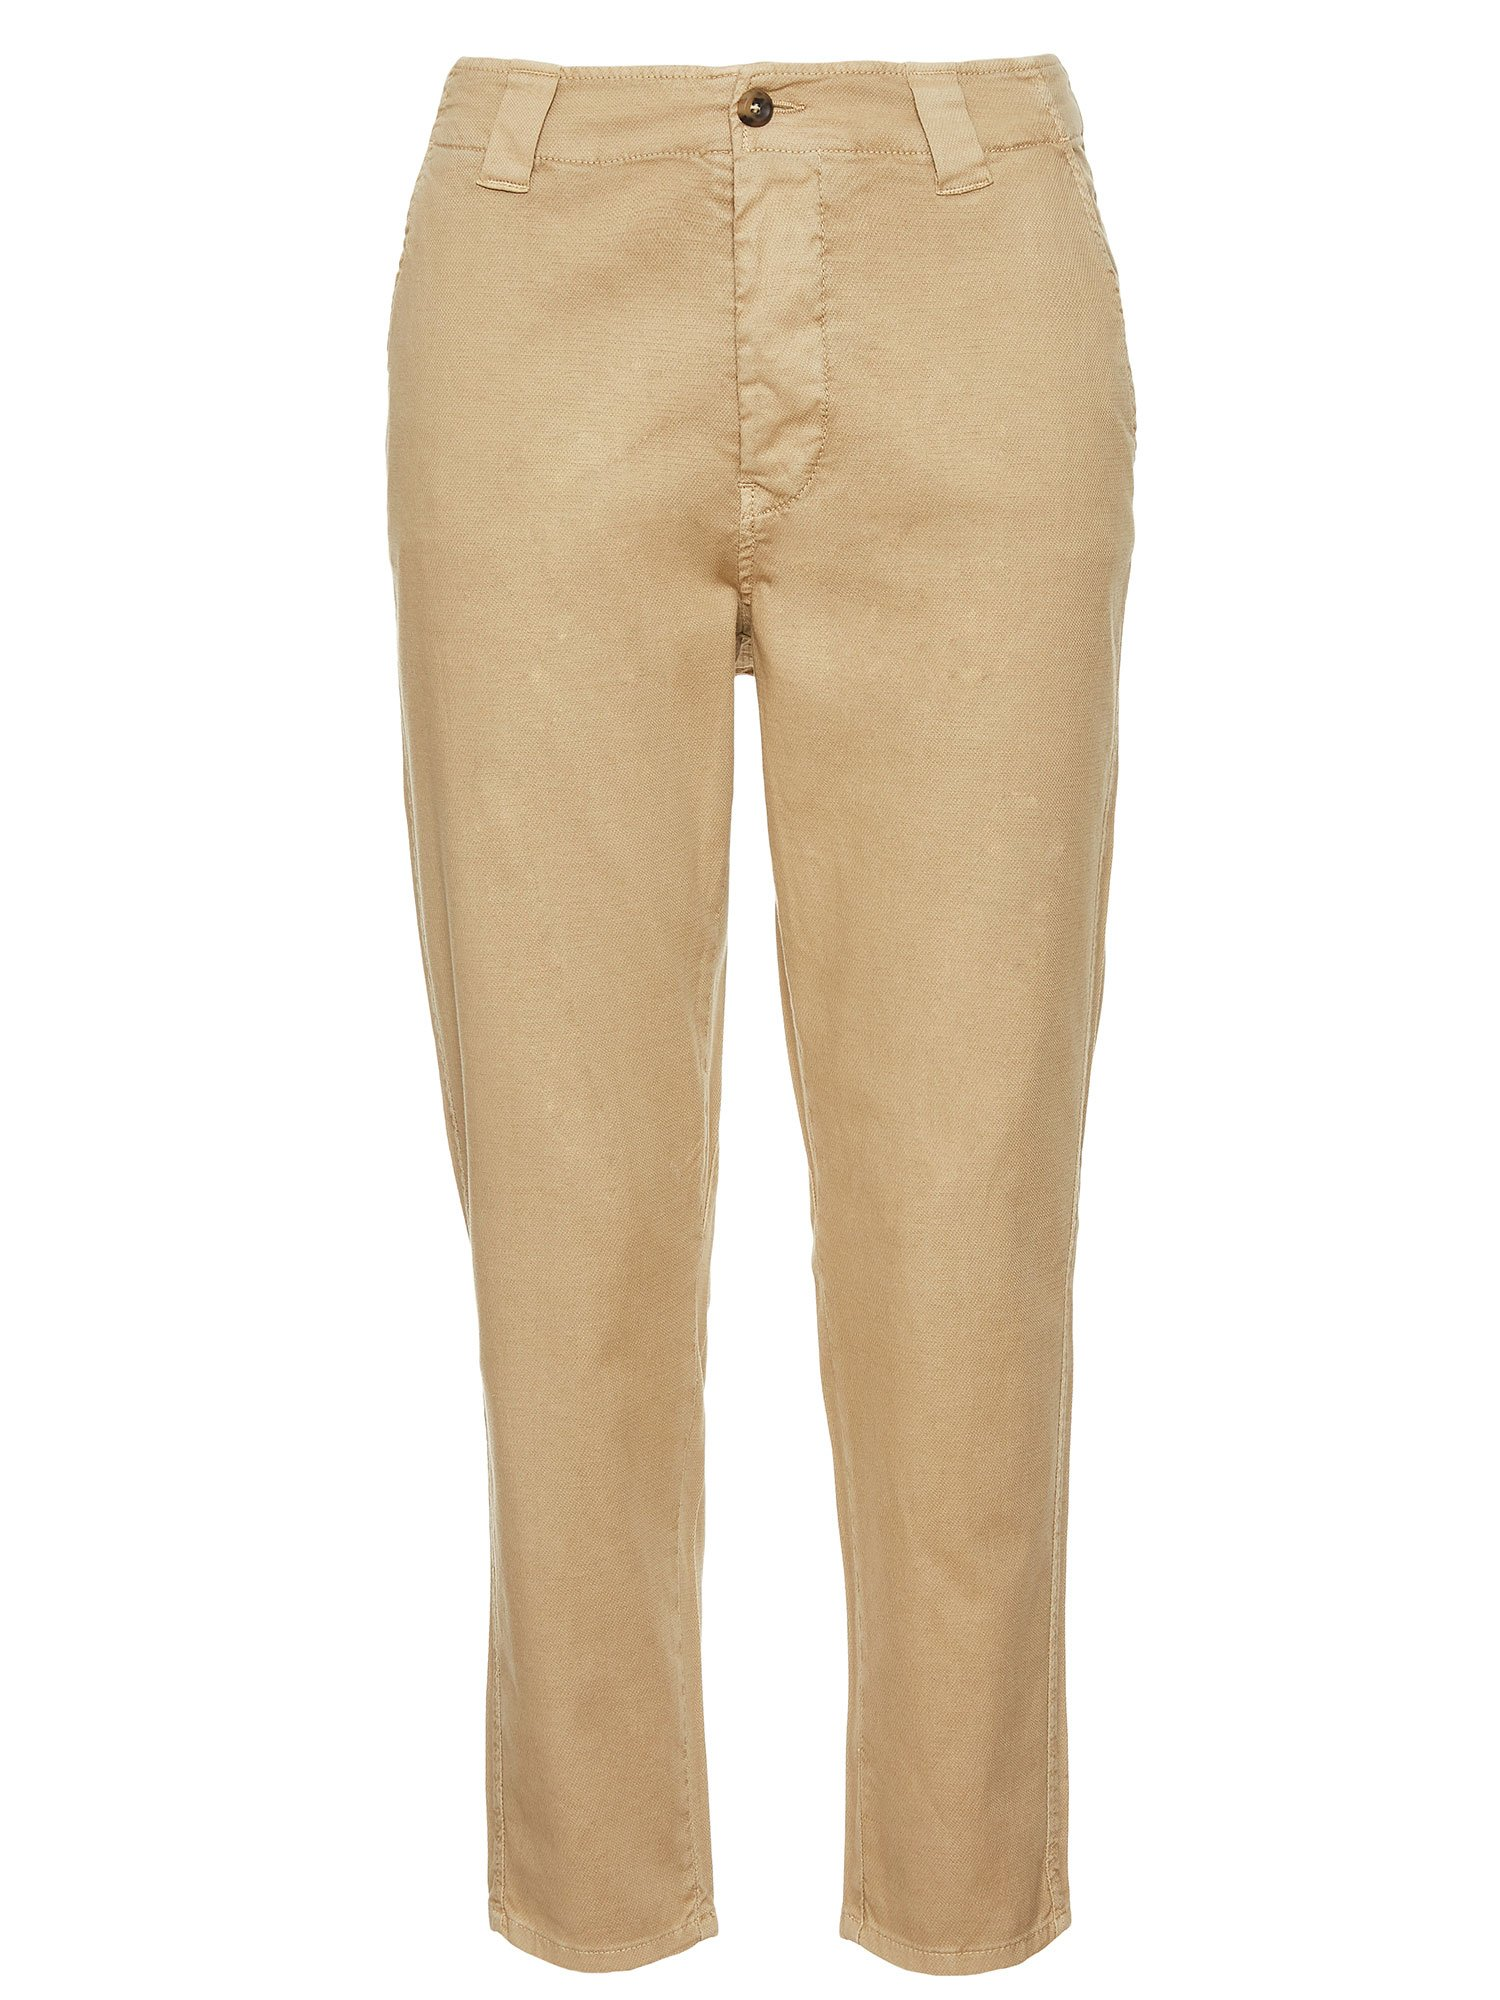 LONG COTTON DOBBY WEAVE TROUSERS - Biscuit - Blauer